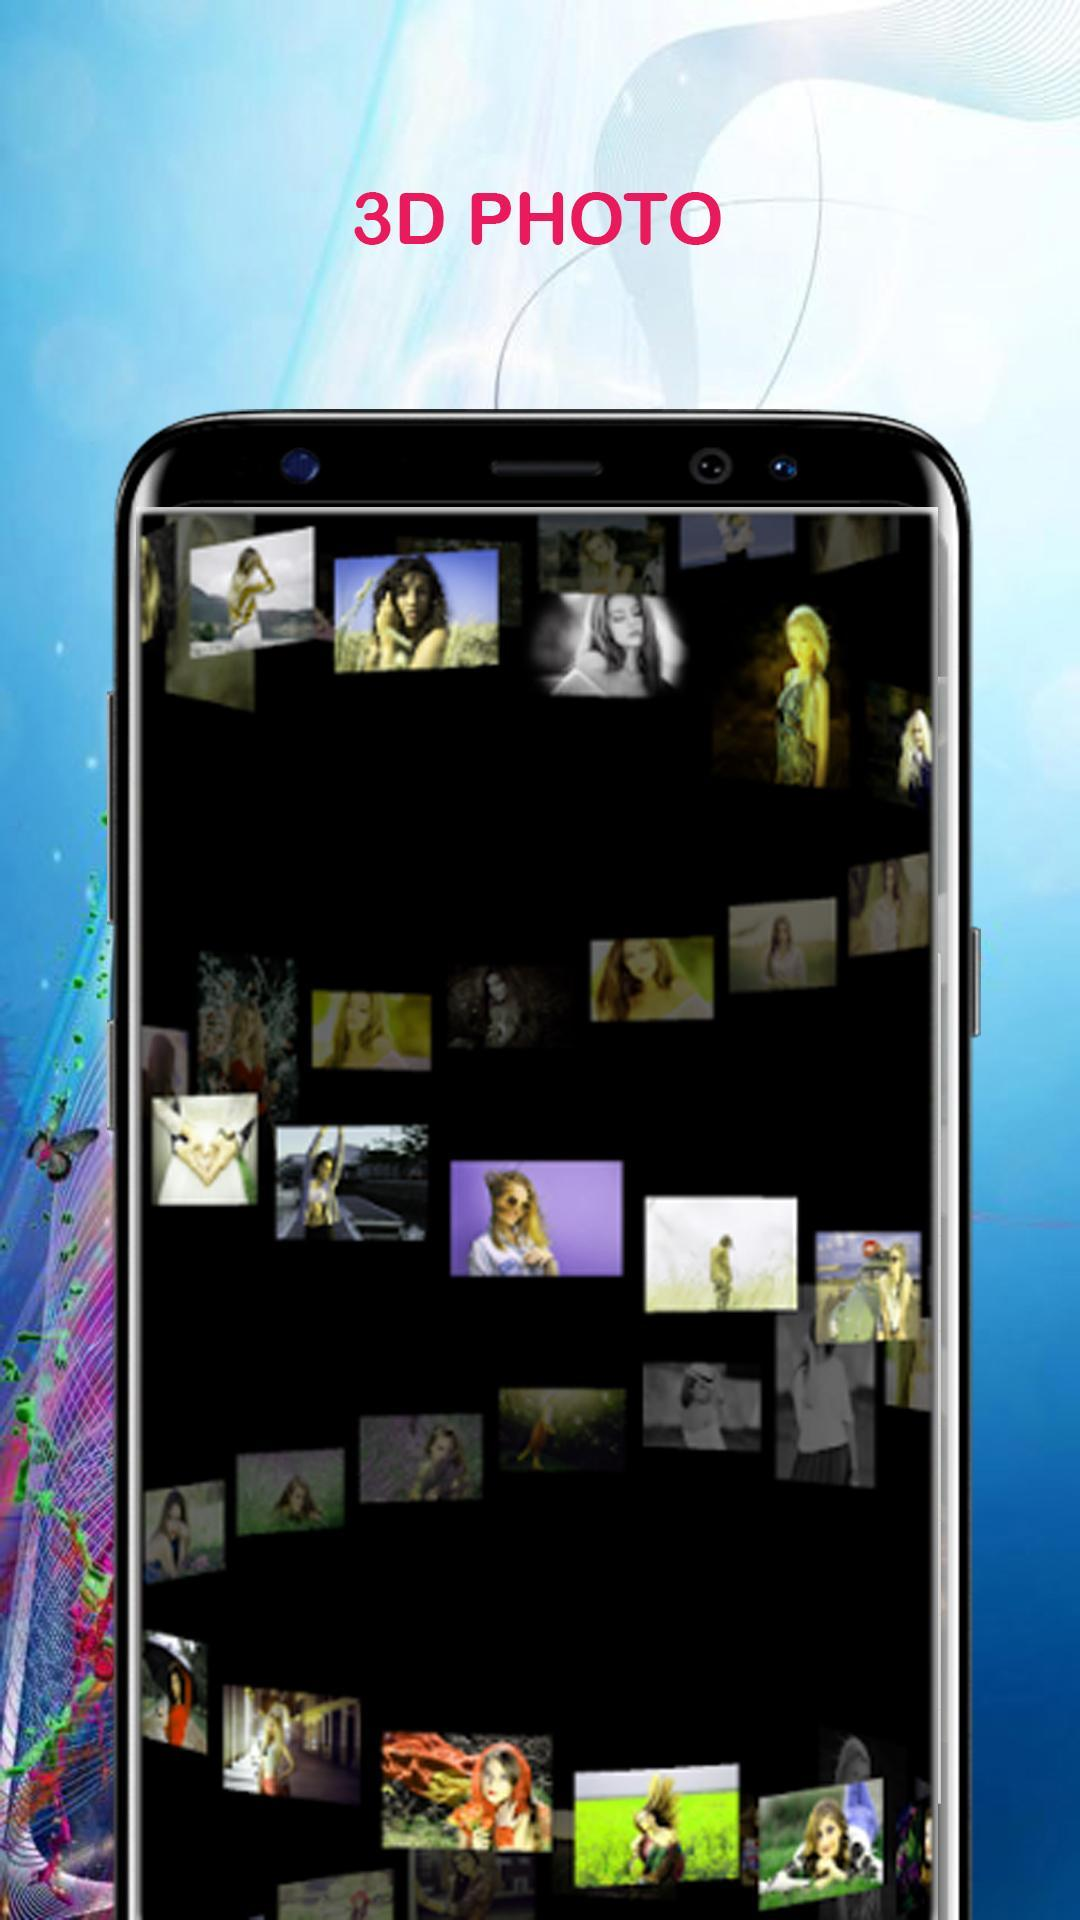 Samsung Galaxy 9 Gallery Pro 2018 for Android - APK Download